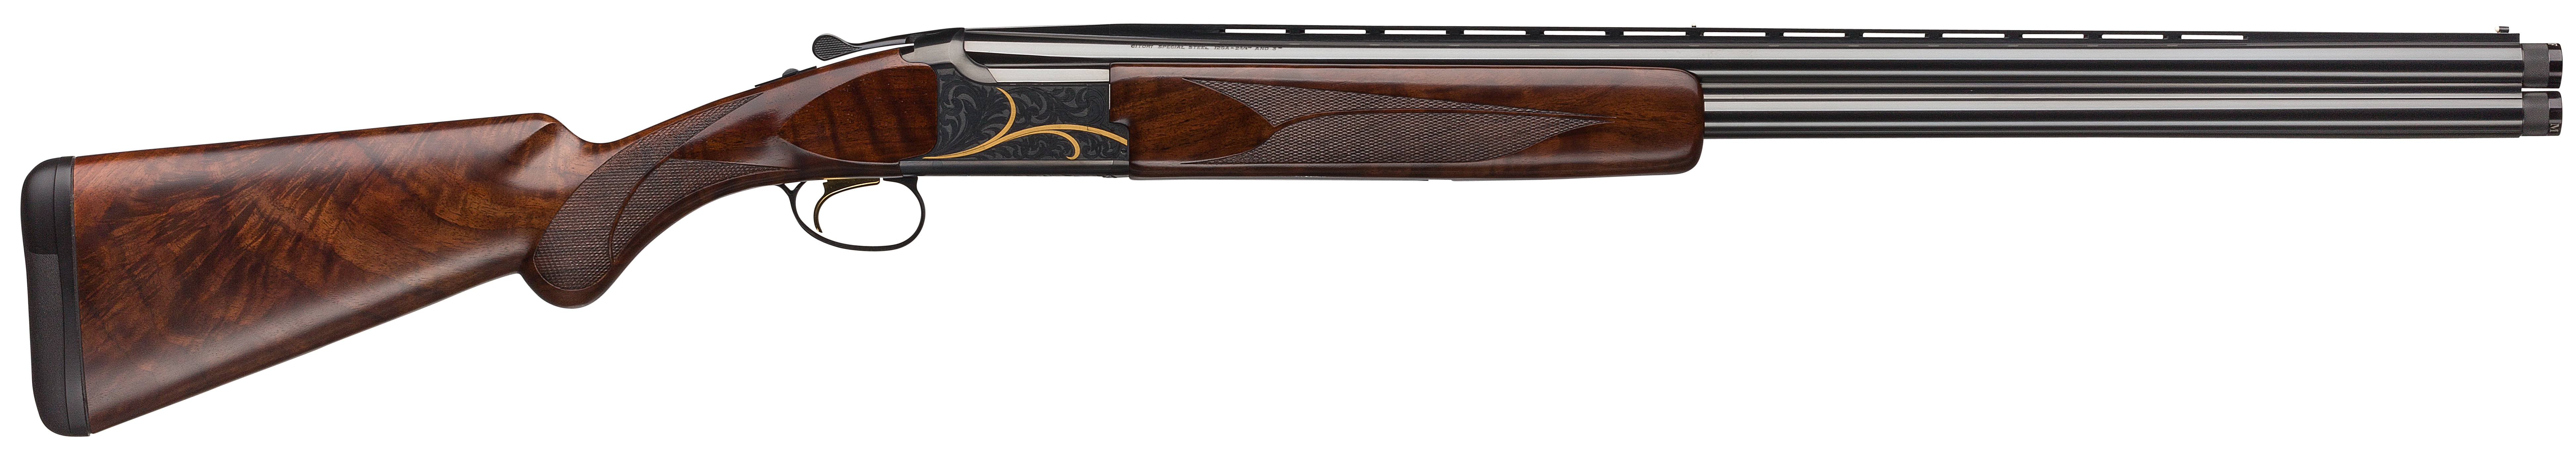 Browning Citori Gran Lightning Over/Under 3'' 12 Gauge 28'' Silver Nitride Steel - Black Walnut